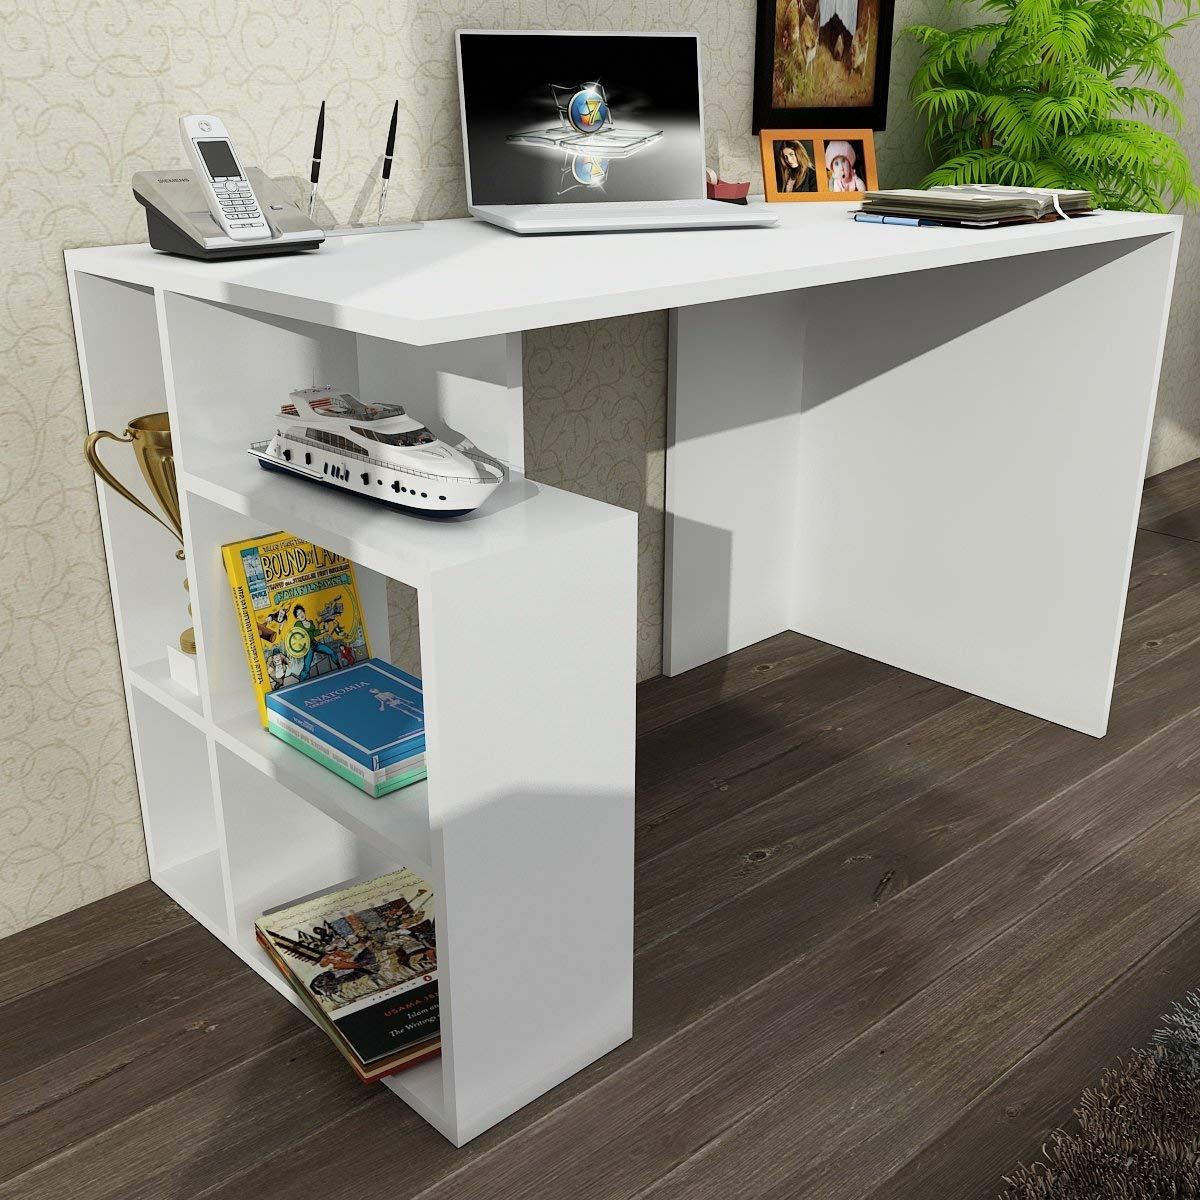 Writing Computer Desk Modern & Simple White Straight Flush Design Modern Flat Plain Simple Study Desk Industrial Style Study & Laptop Table for Home, Office, Living Room, Study Room